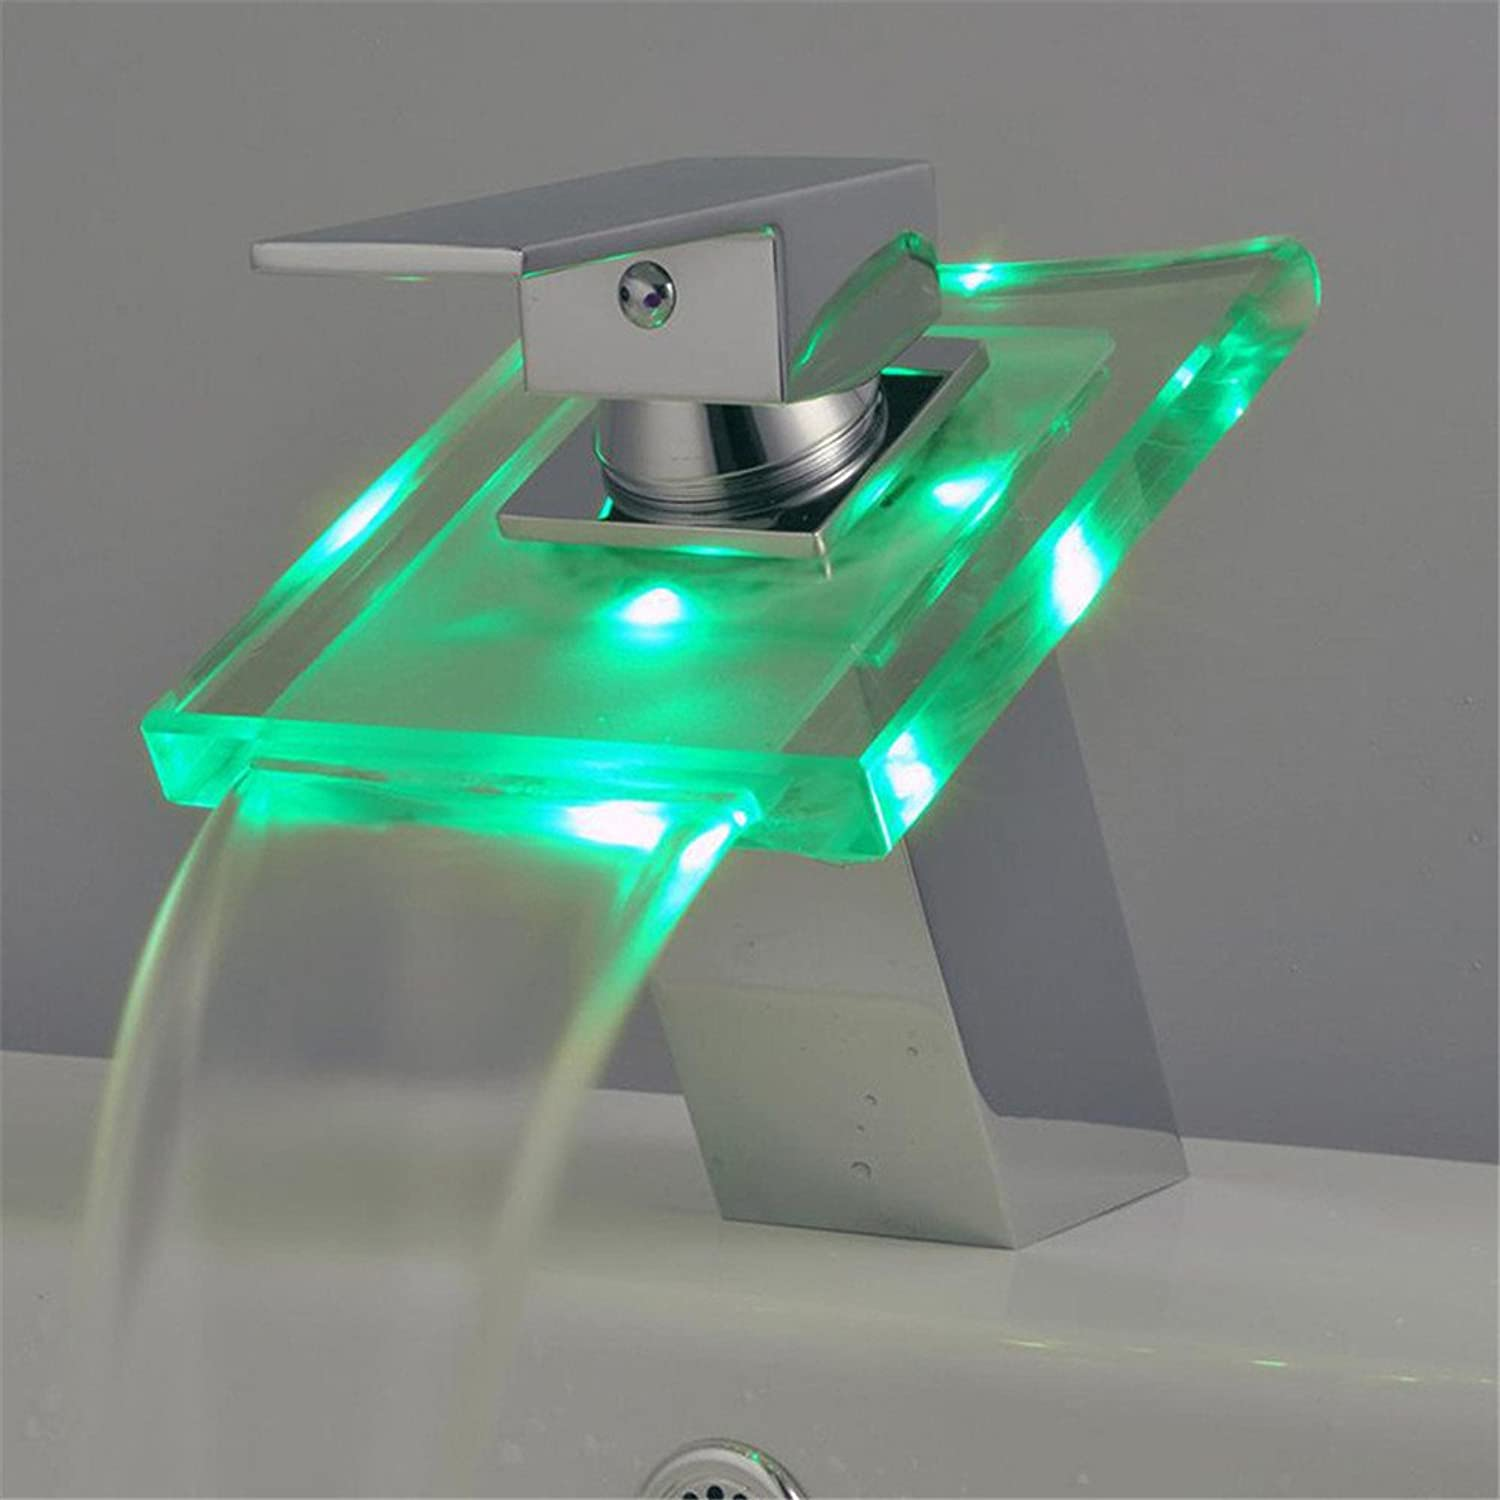 Decorry Lift-Up Basin Faucet Classical Fashion Glazing Thermostat Faucet Led Lights